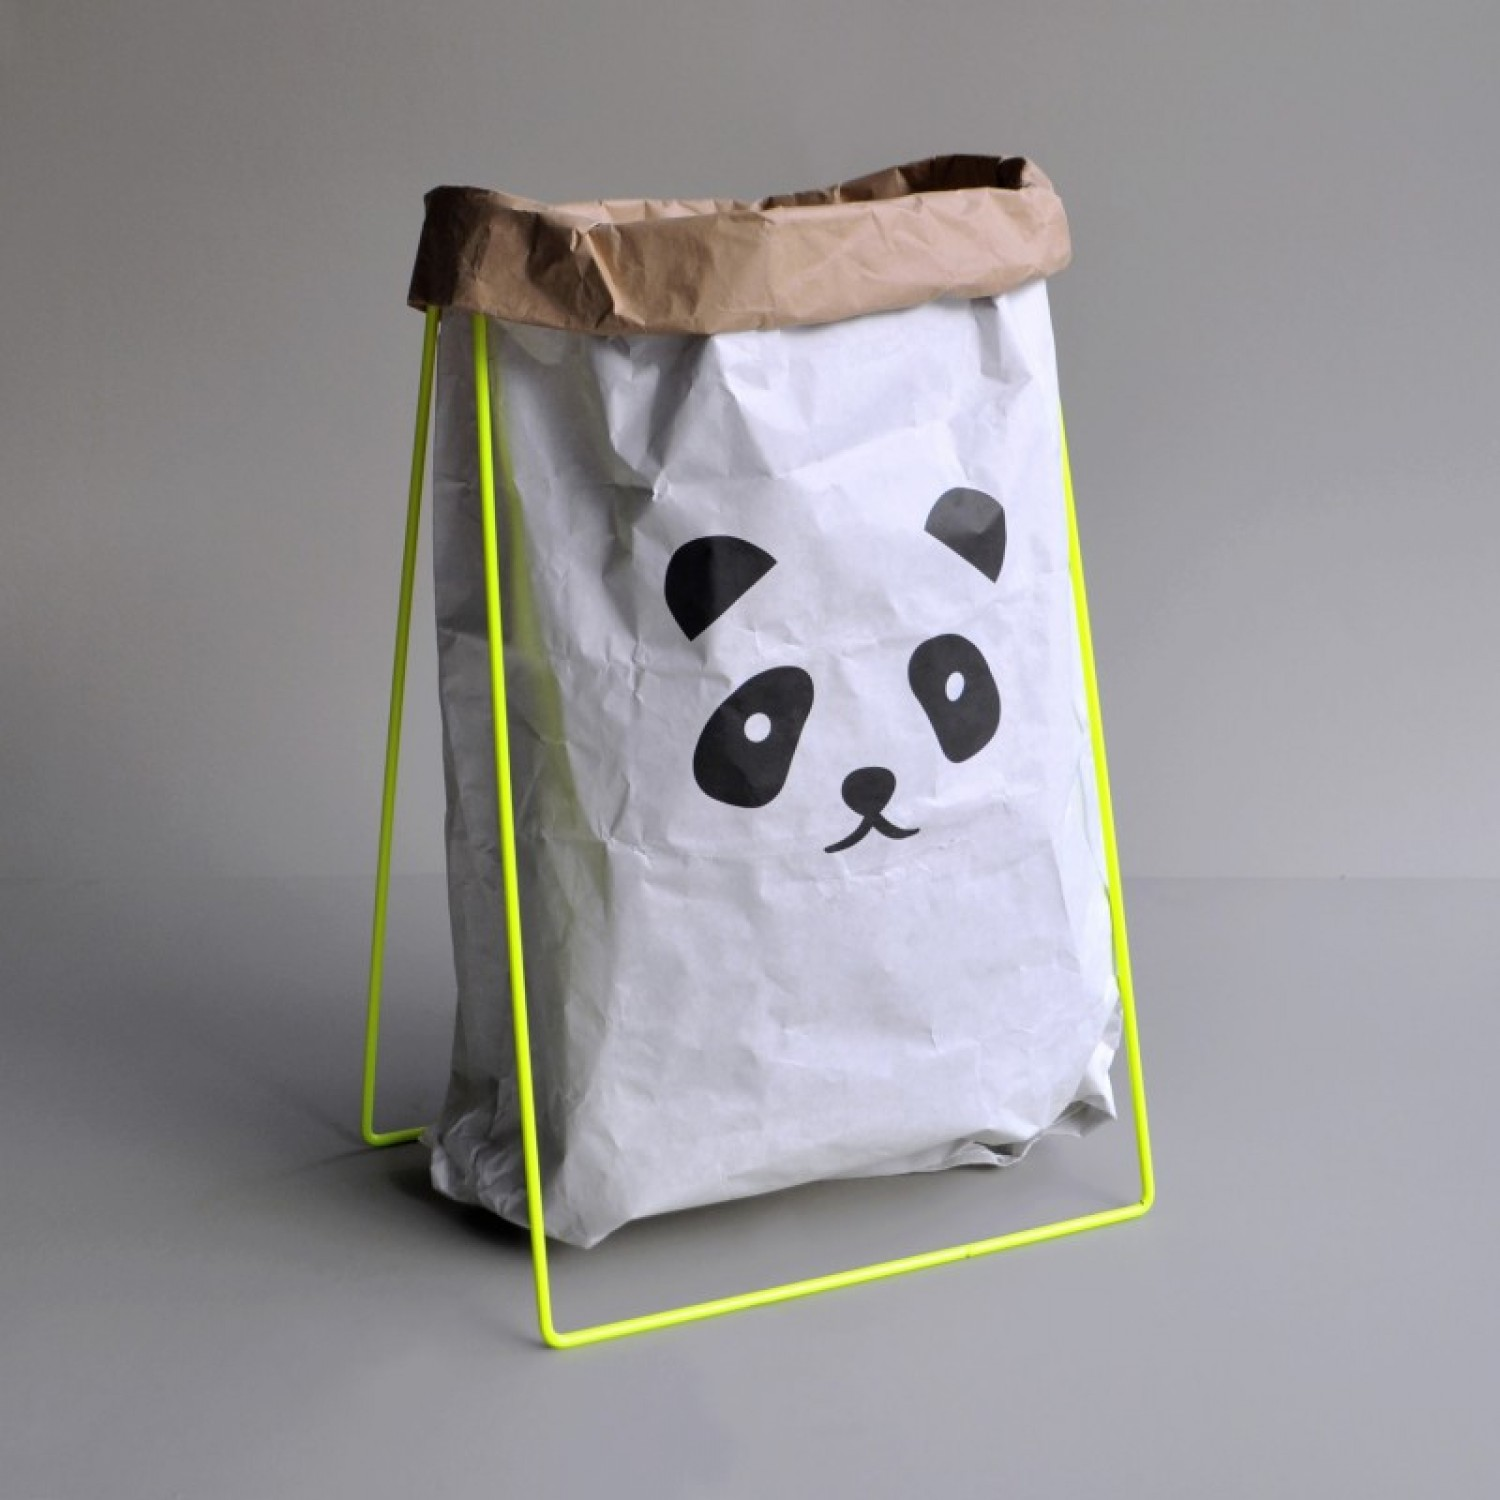 Neon Metal Paper Bag Holder with PANDA Paper Bag